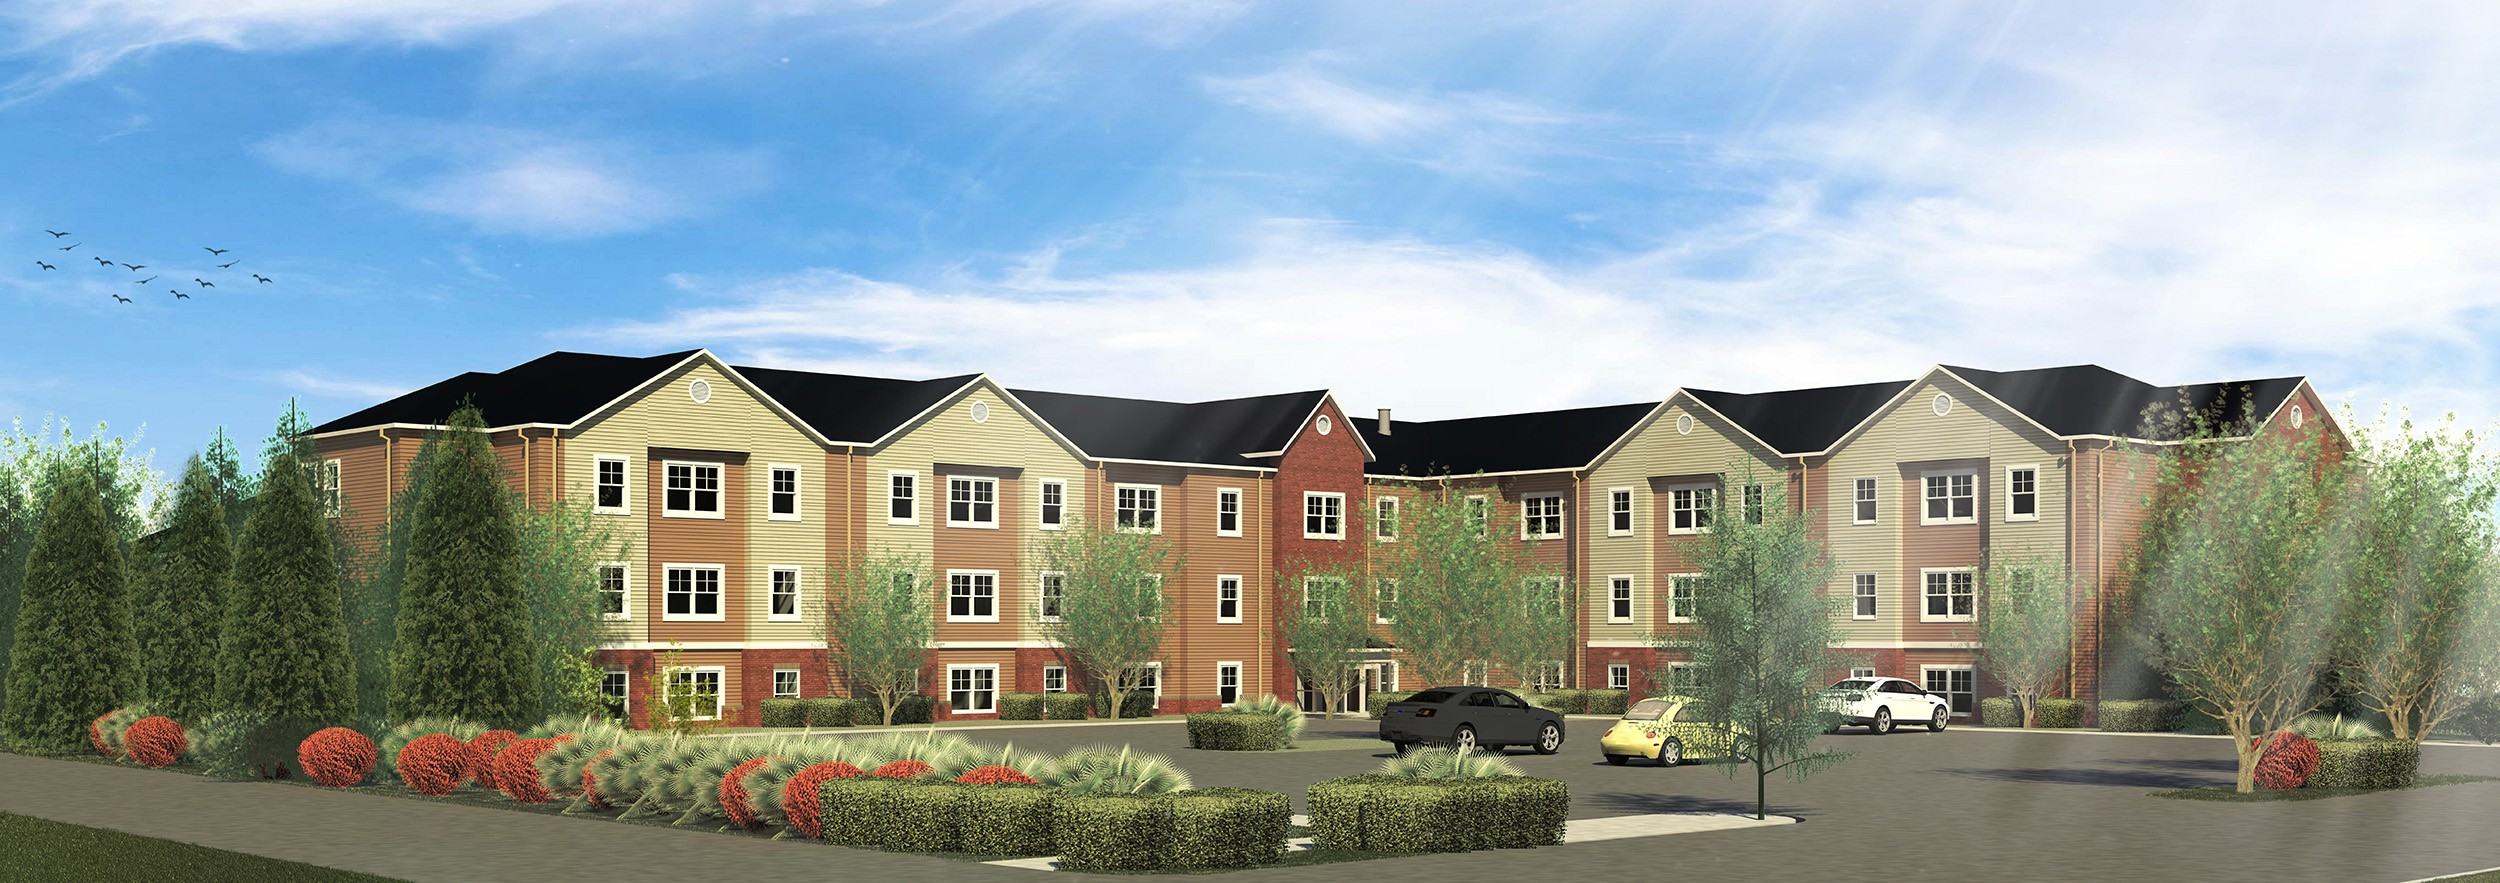 Apartments Near Sinclair Audubon Crossing for Sinclair Community College Students in Dayton, OH